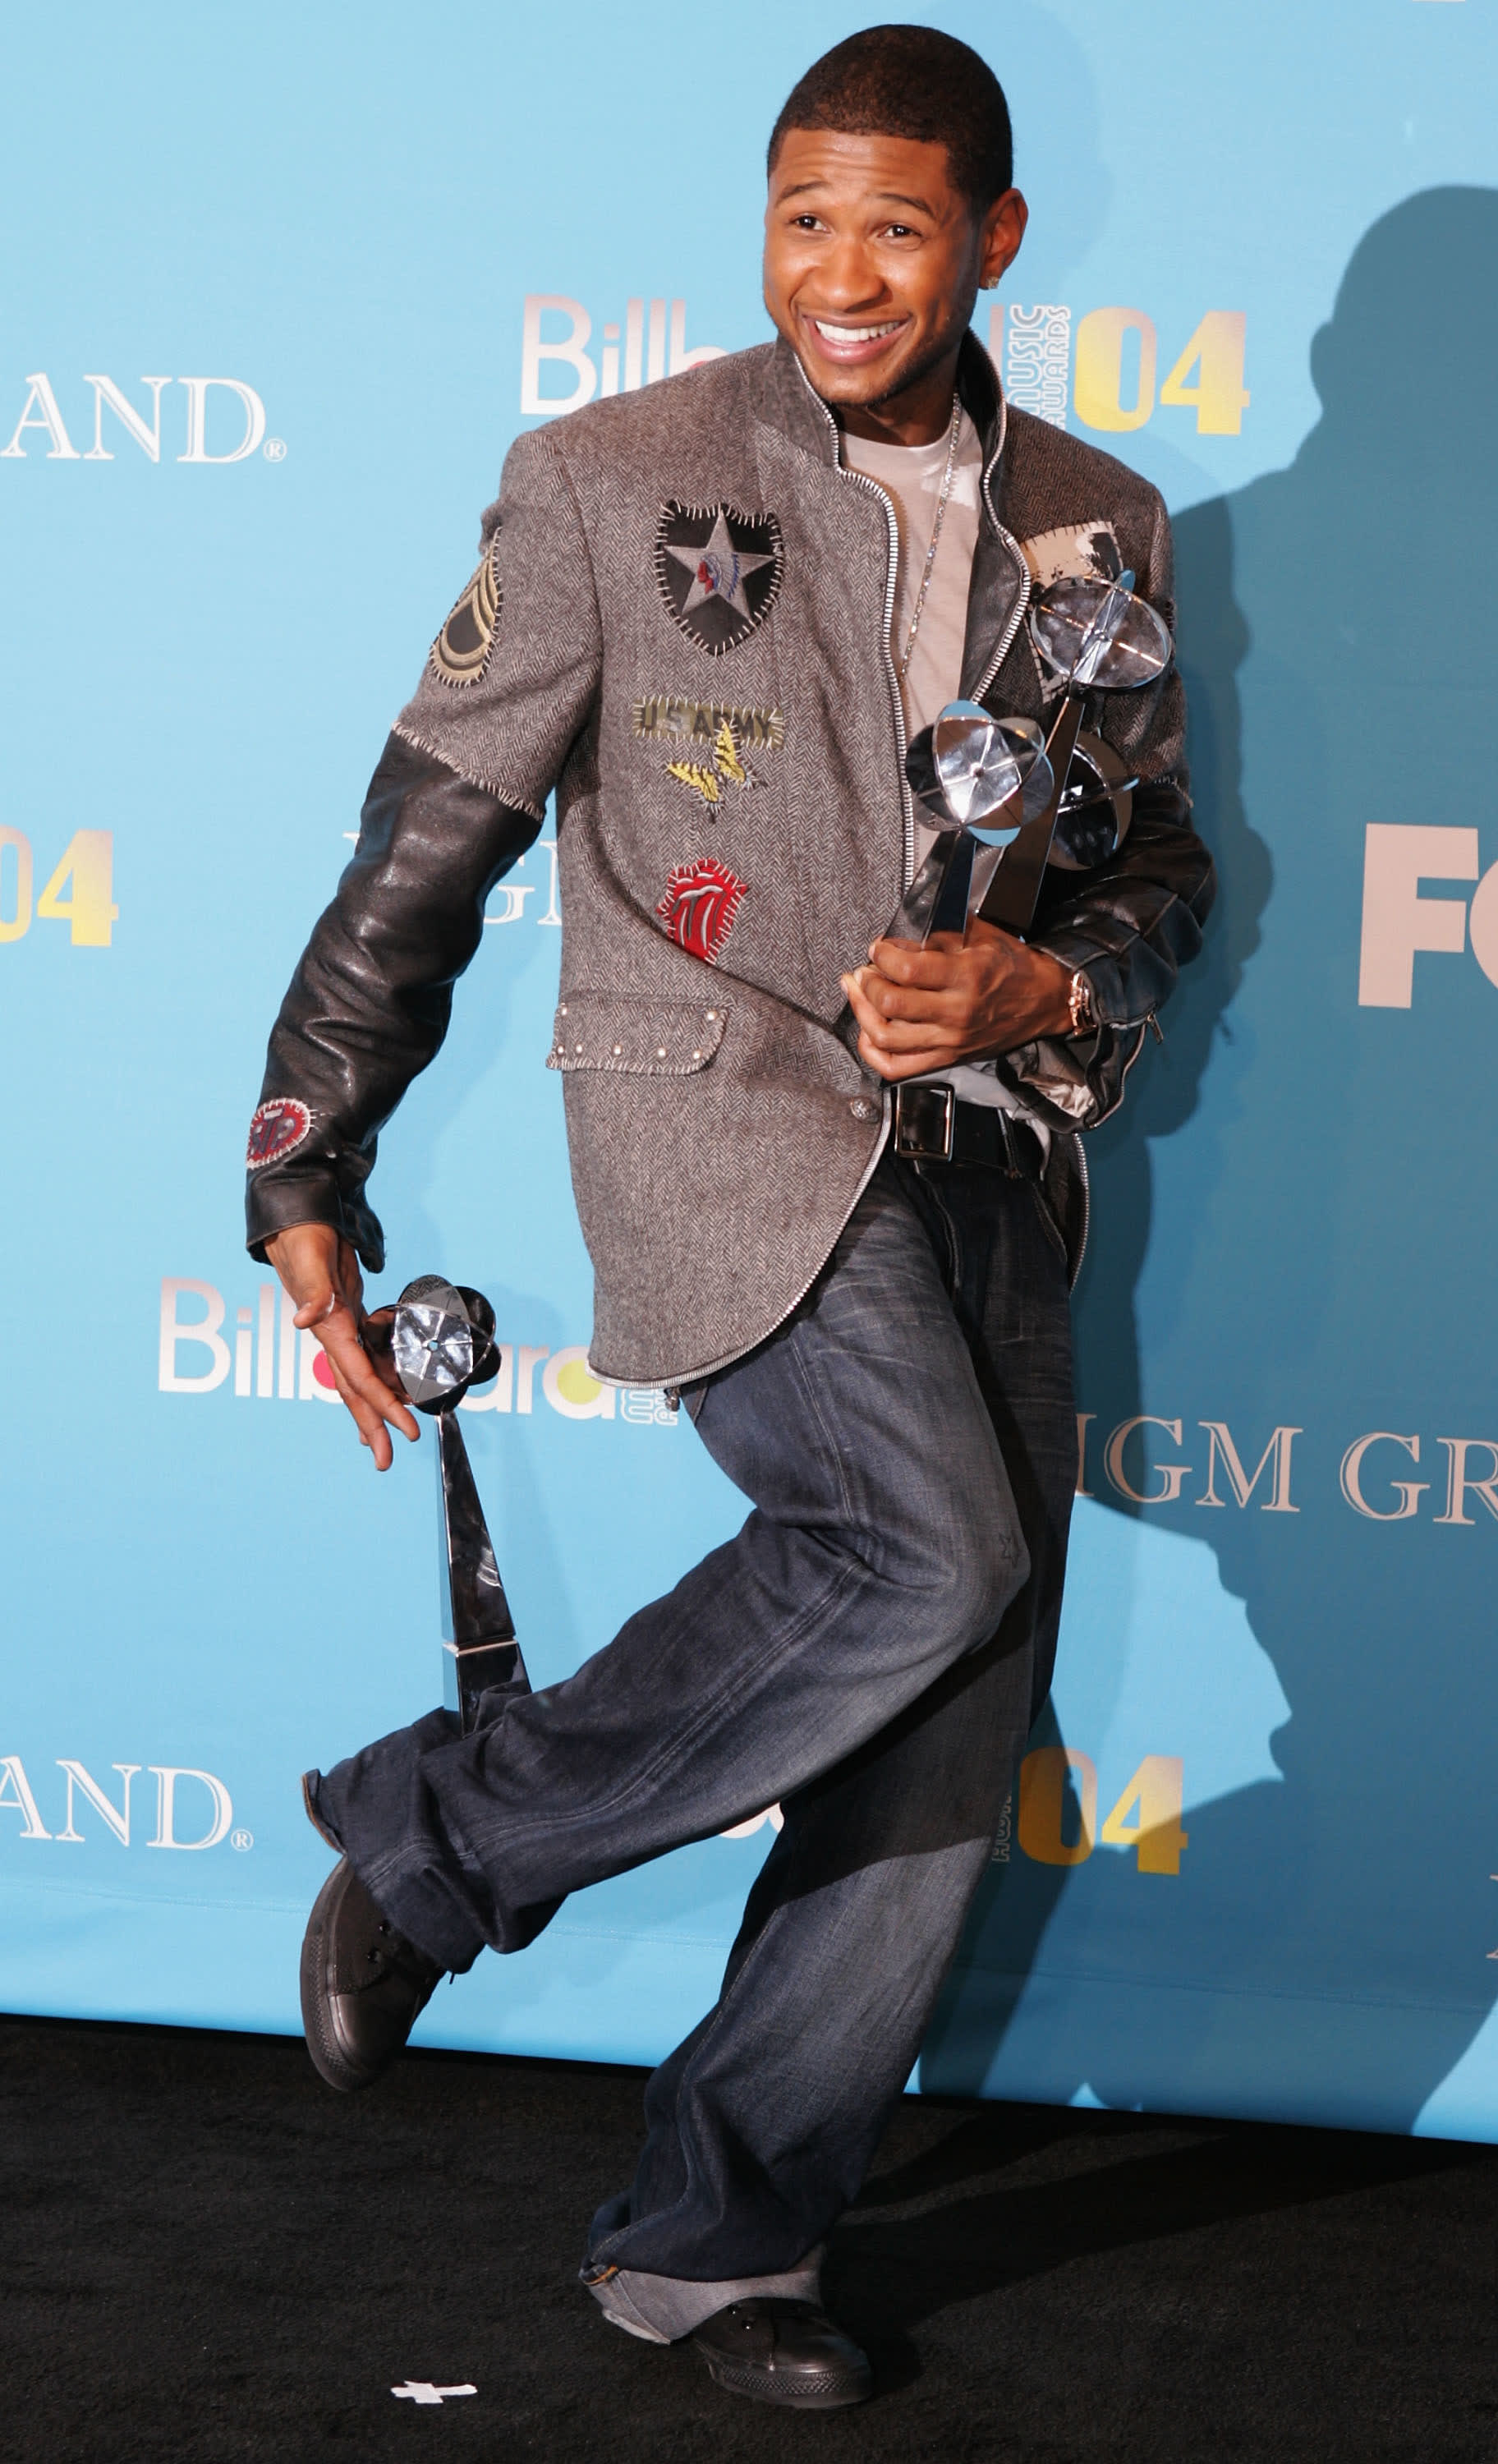 Usher wears a long patchwork jacket with leather sleeves and baggy jeans.